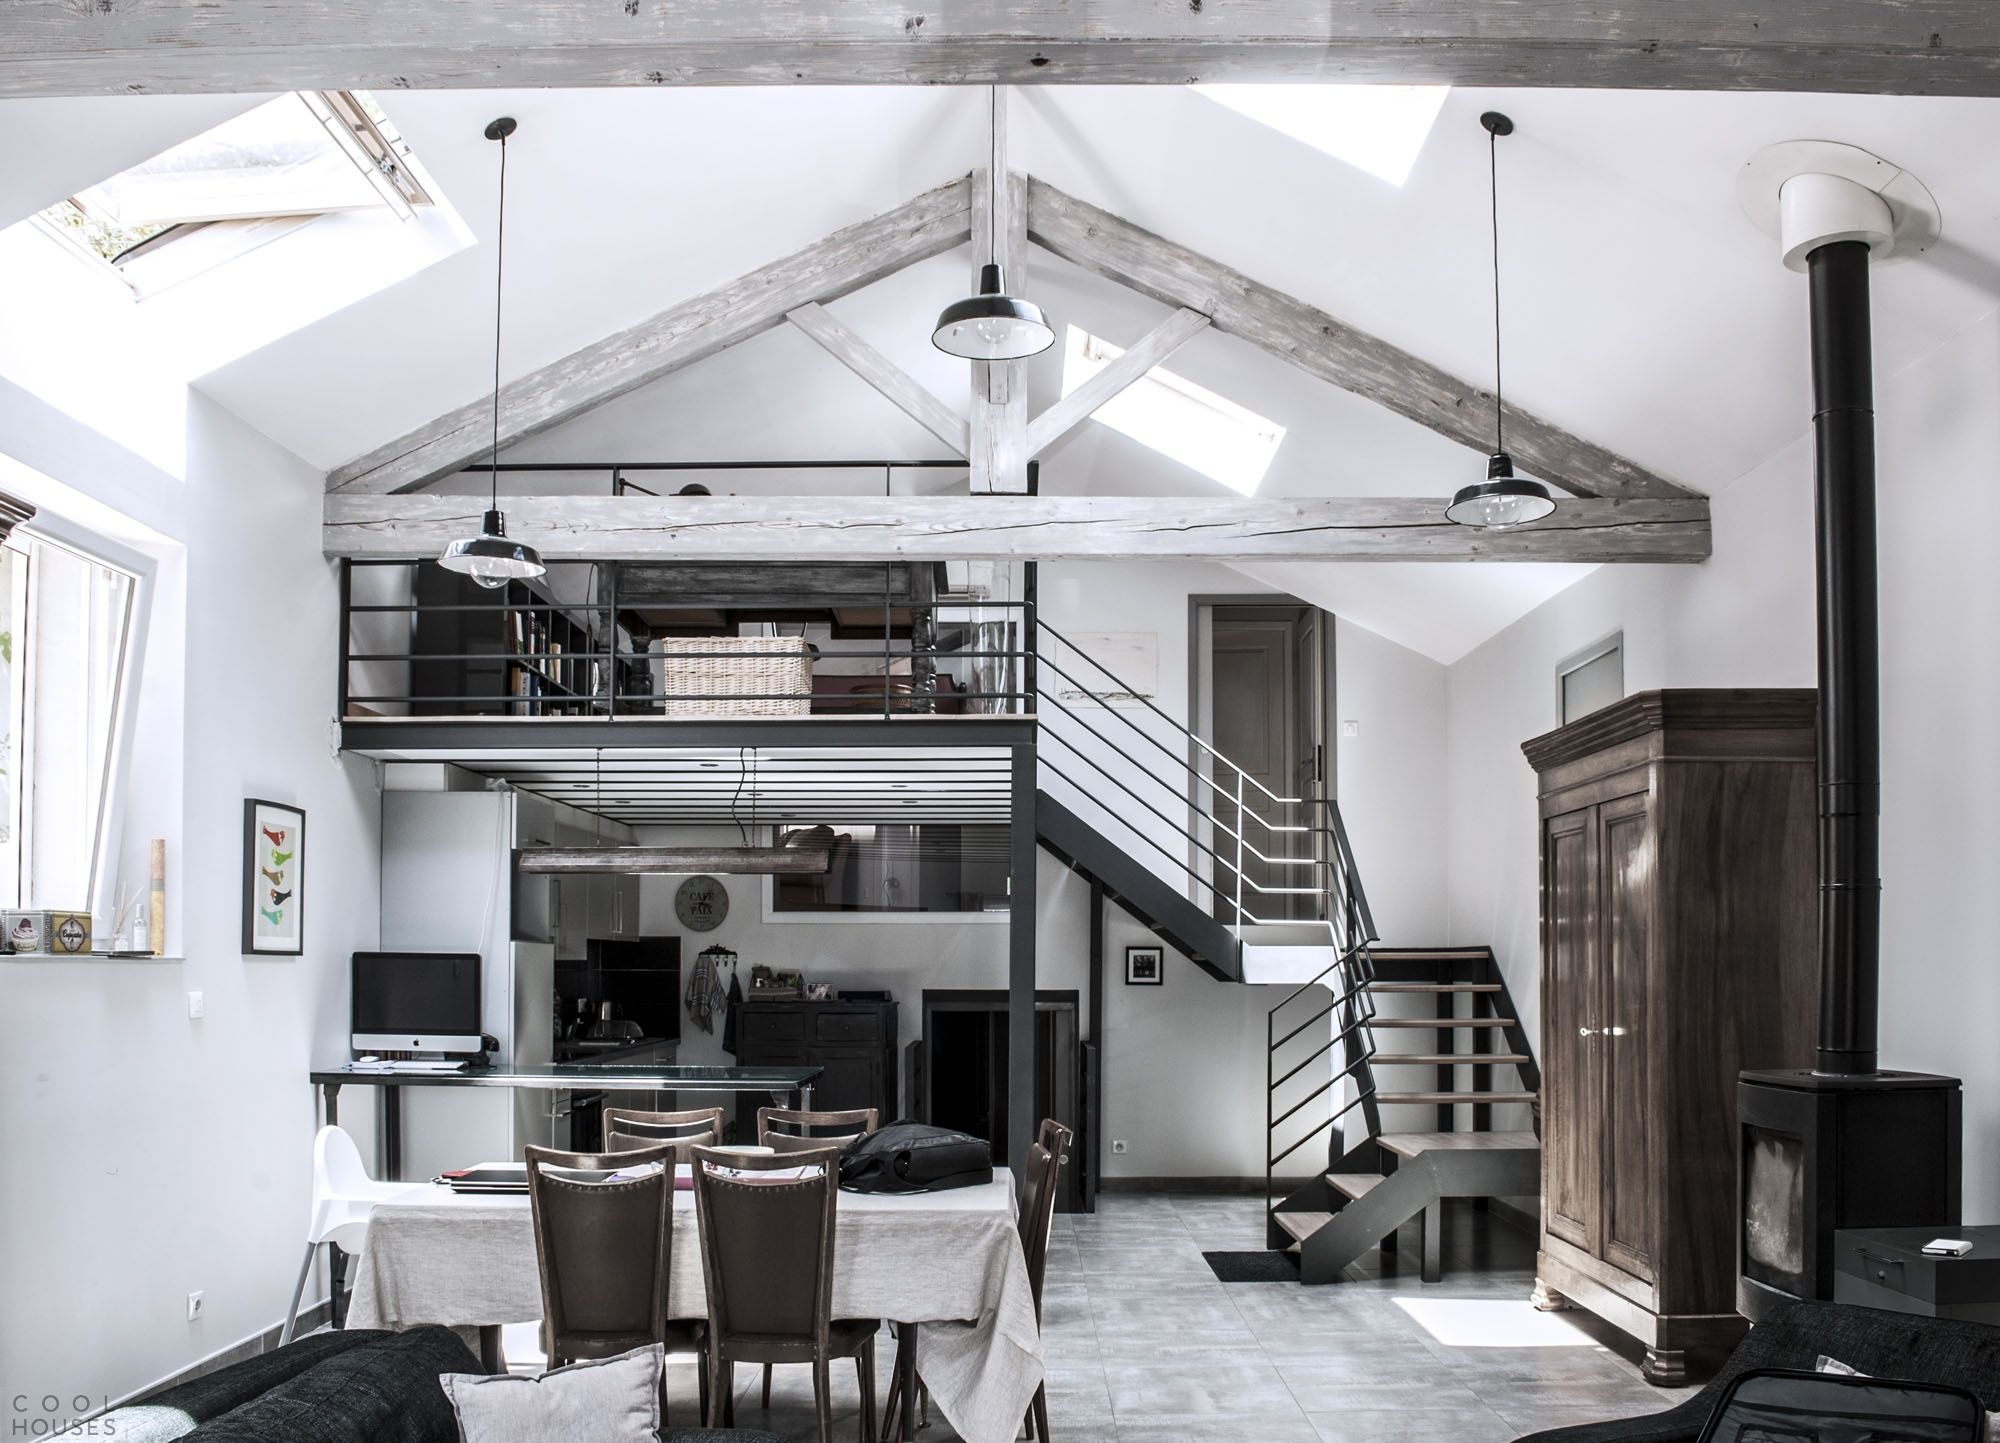 Shabby chic loft apartment: local shabby chic style romance and ...